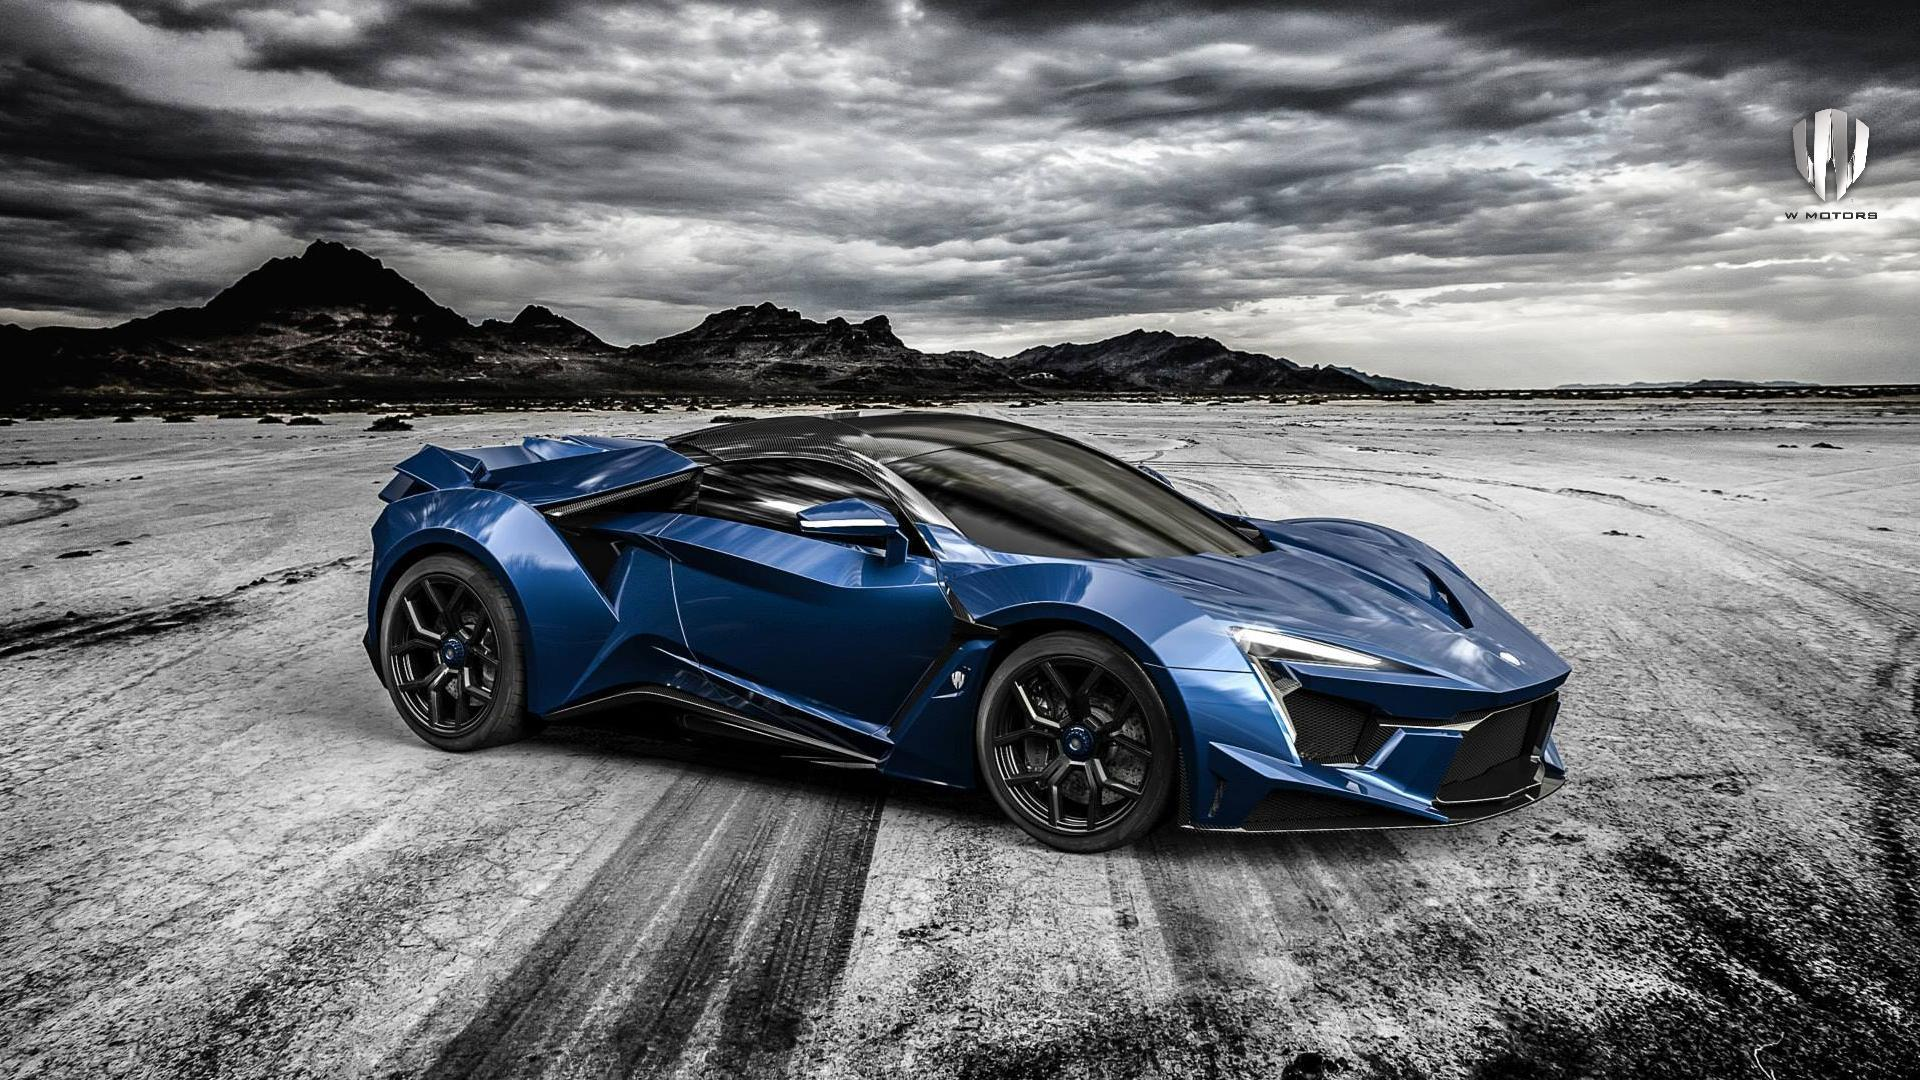 Galery Supercar Fenyr Supersport Ongolongol Com